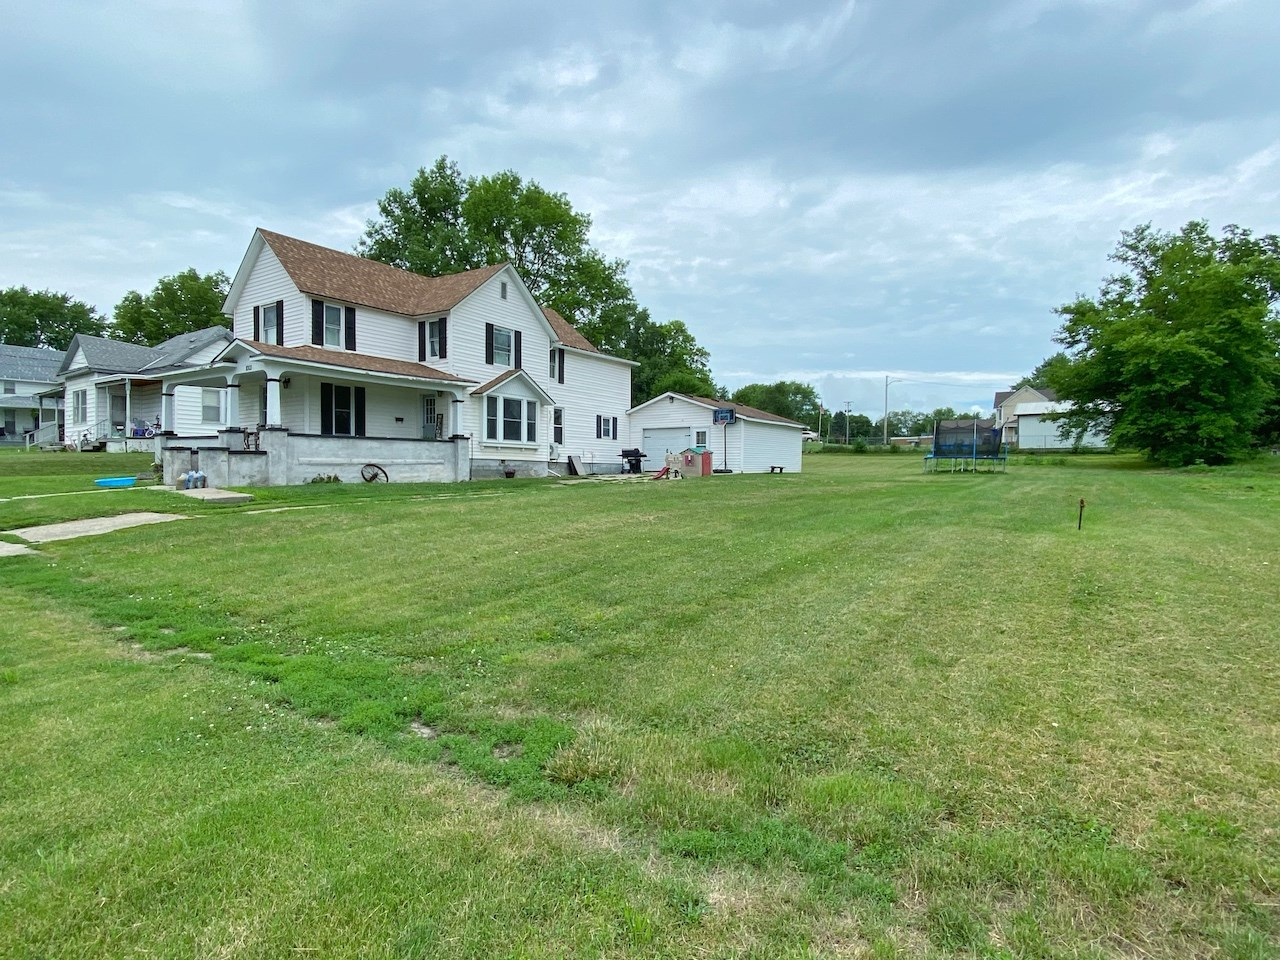 Home For Sale in Bedford Iowa Taylor County